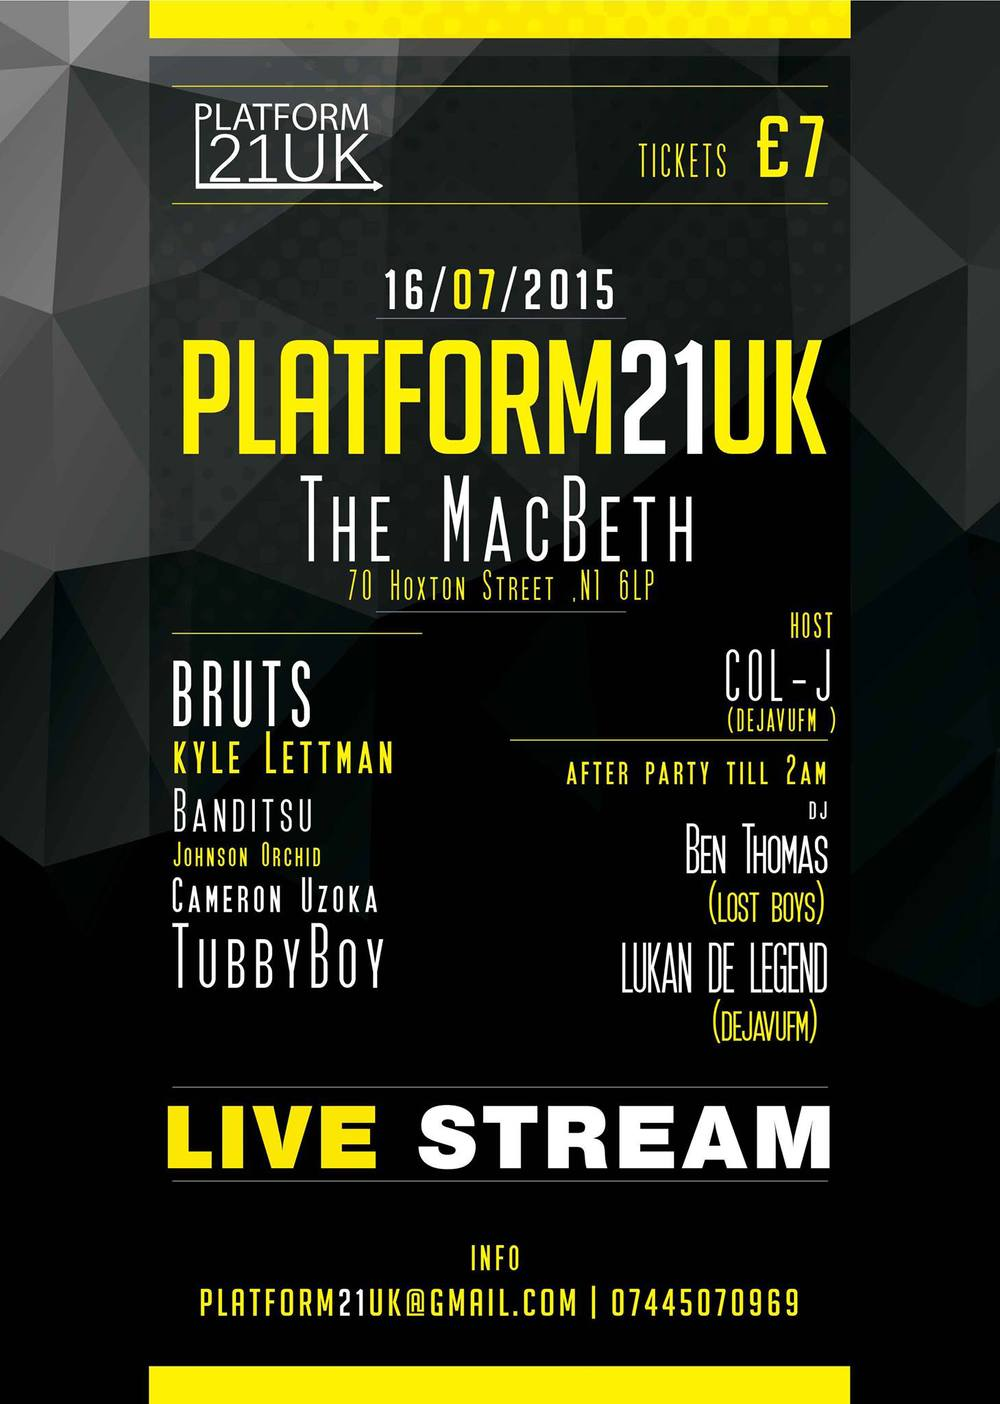 PLATFORM21UK, Is a new and original concept in Urban Events and Radio Culture and a pioneering & powerful new way to experience live music & radio.  After couple of successful events, we are back on the 16th July live from Macbeth Hoxton ,relaunching our event and showcasing a hand picked selection of UK best underground artists  The performances will be STREAM LIVE and we have some surprises for all of you so make sure you join the movement  Live on Stage  ''BRUTS'' http://brutsofficial.bandcamp.com/ ''KYLE LETTMAN'' https://soundcloud.com/kyle-lettman ''BANDITSU'' www.banditsu.com ''JOHNSON ORCHID'' www.sagsco.com ''CAMERON UZOKA'' https://cameronuzoka.bandcamp.com/ ''TUBBYBOY'' https://www.facebook.com/pages/Tubby-Boy-Music/ HOST Col-j (dejavufm) DJ's Ben Thomas (Lost Boys) Lukan De Legend (dejavufm) contact: platfrom21uk@gmail.com 07445070969